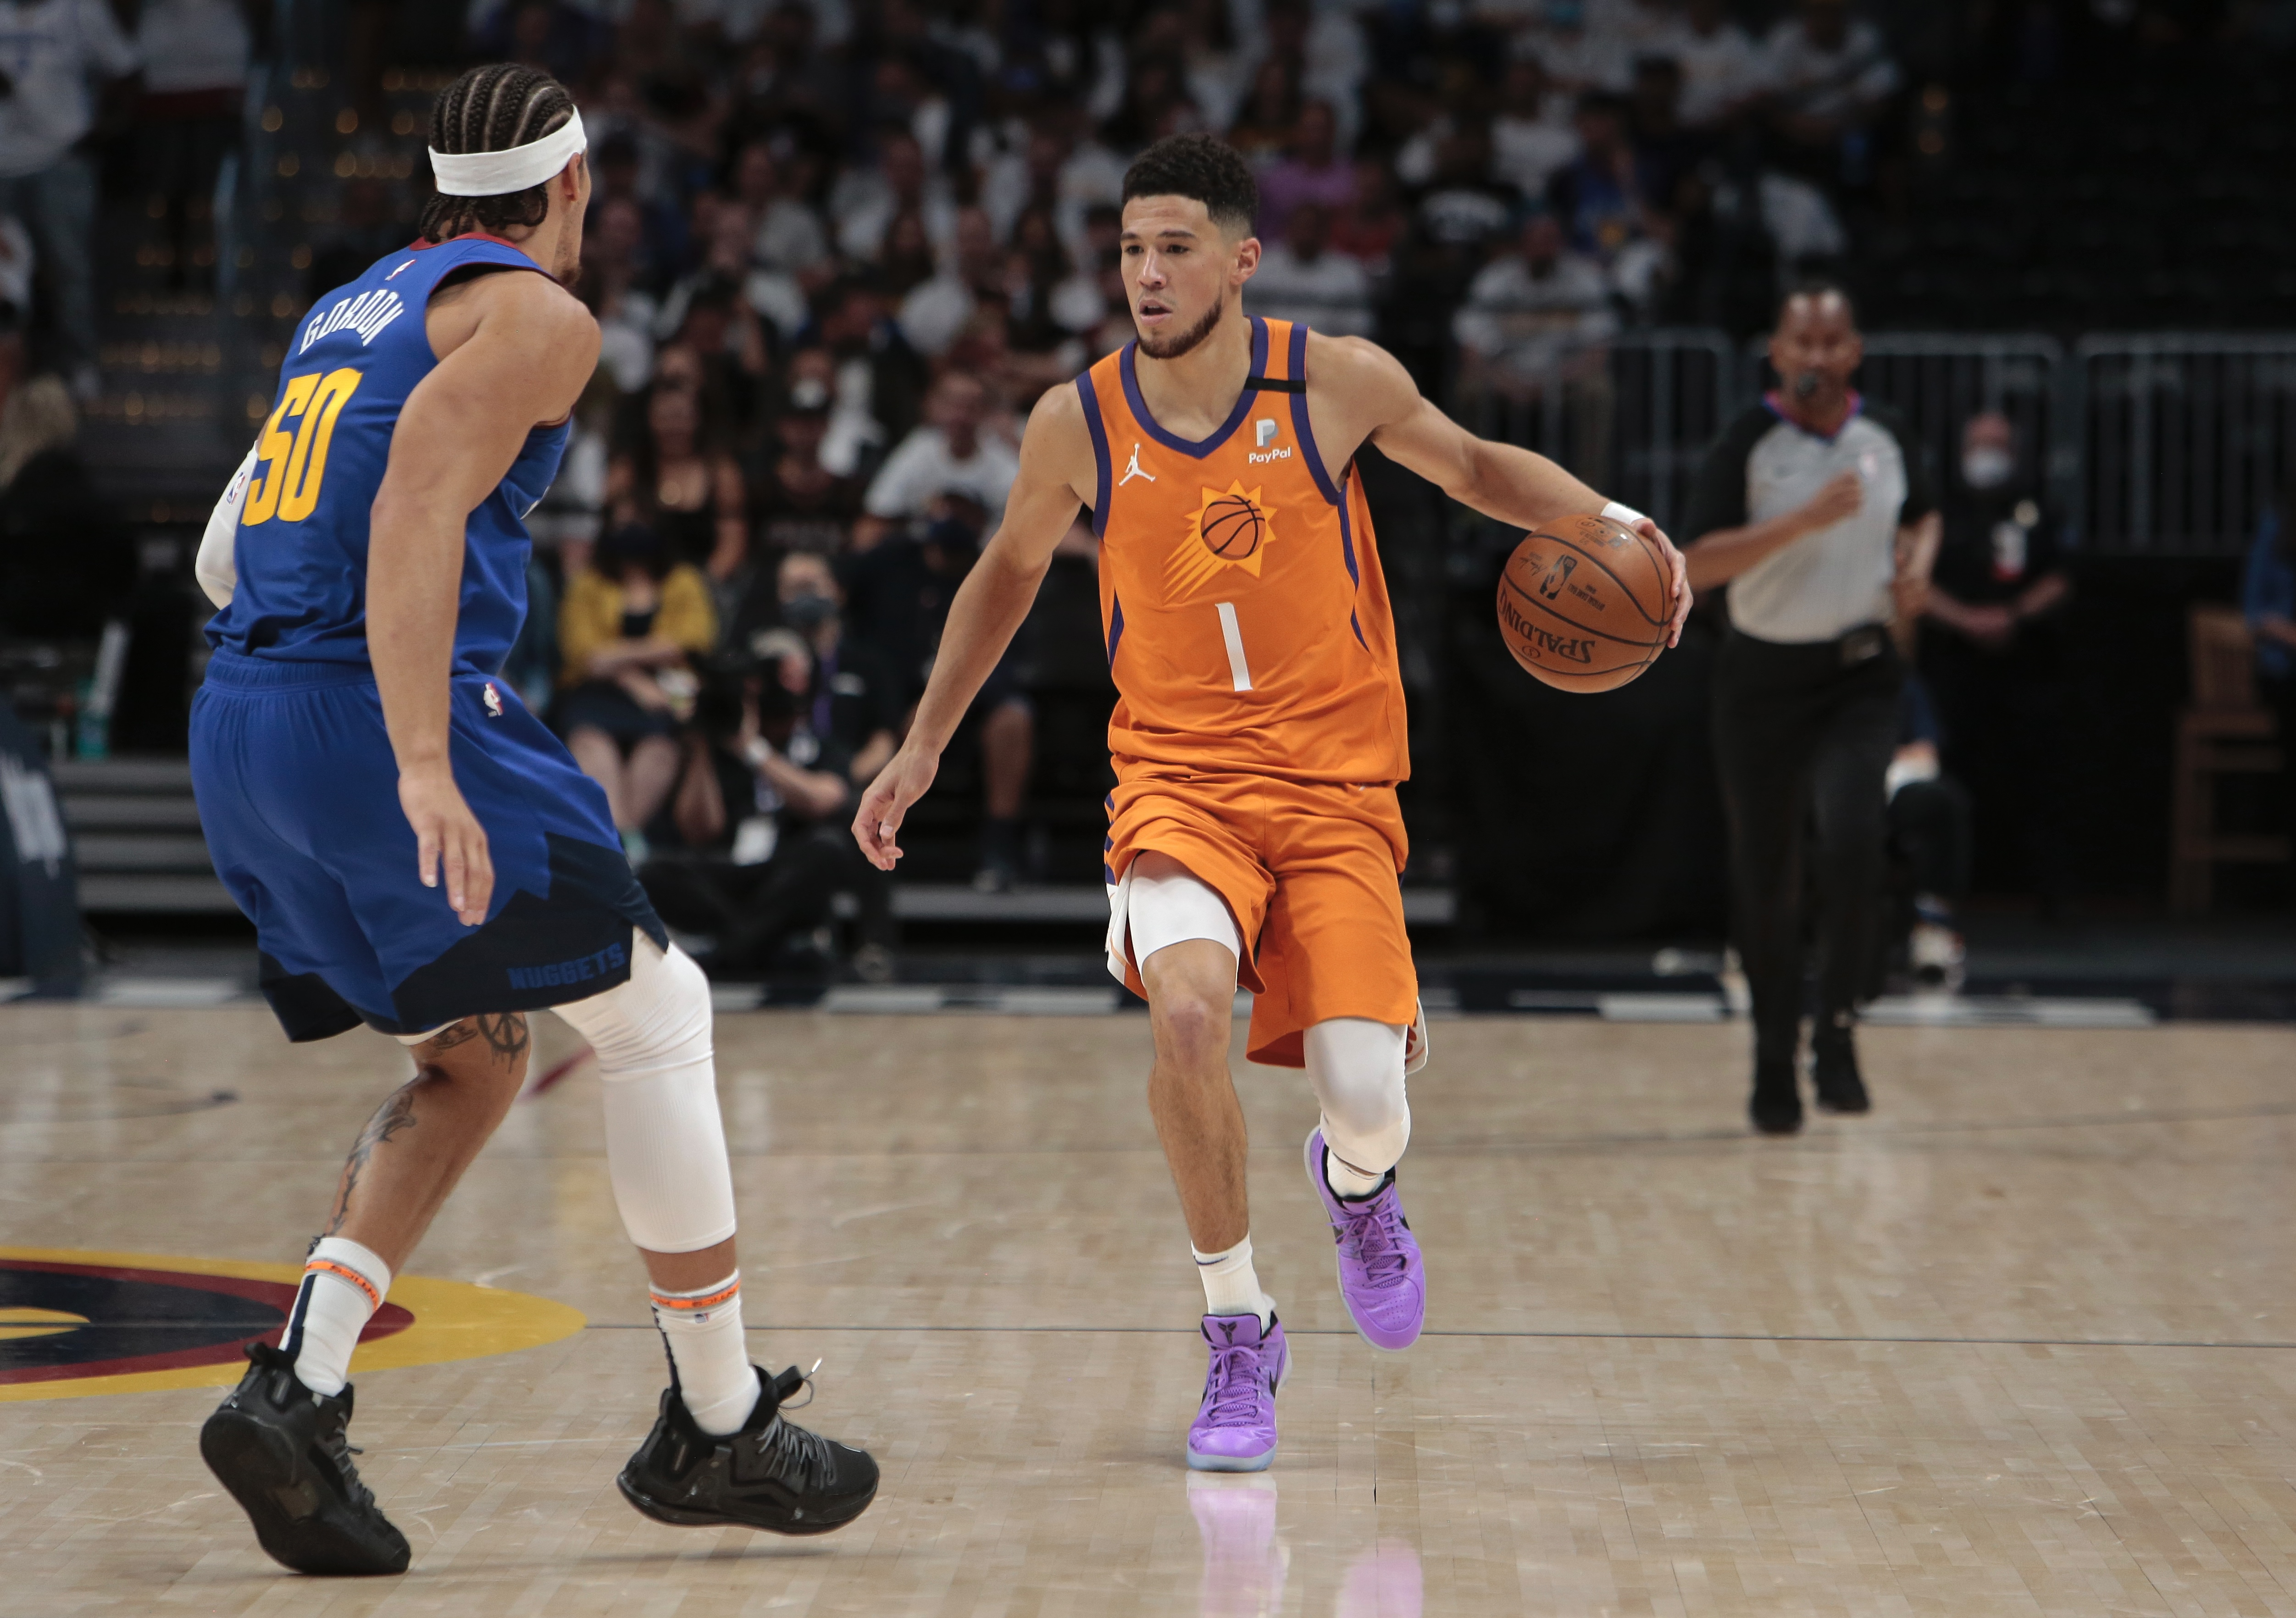 Devin Booker #1 of the Phoenix Suns dribbles the ball against the Denver Nuggets during Round 2, Game 3 of the 2021 NBA Playoffs on June 11, 2021 at the Ball Arena in Denver, Colorado.